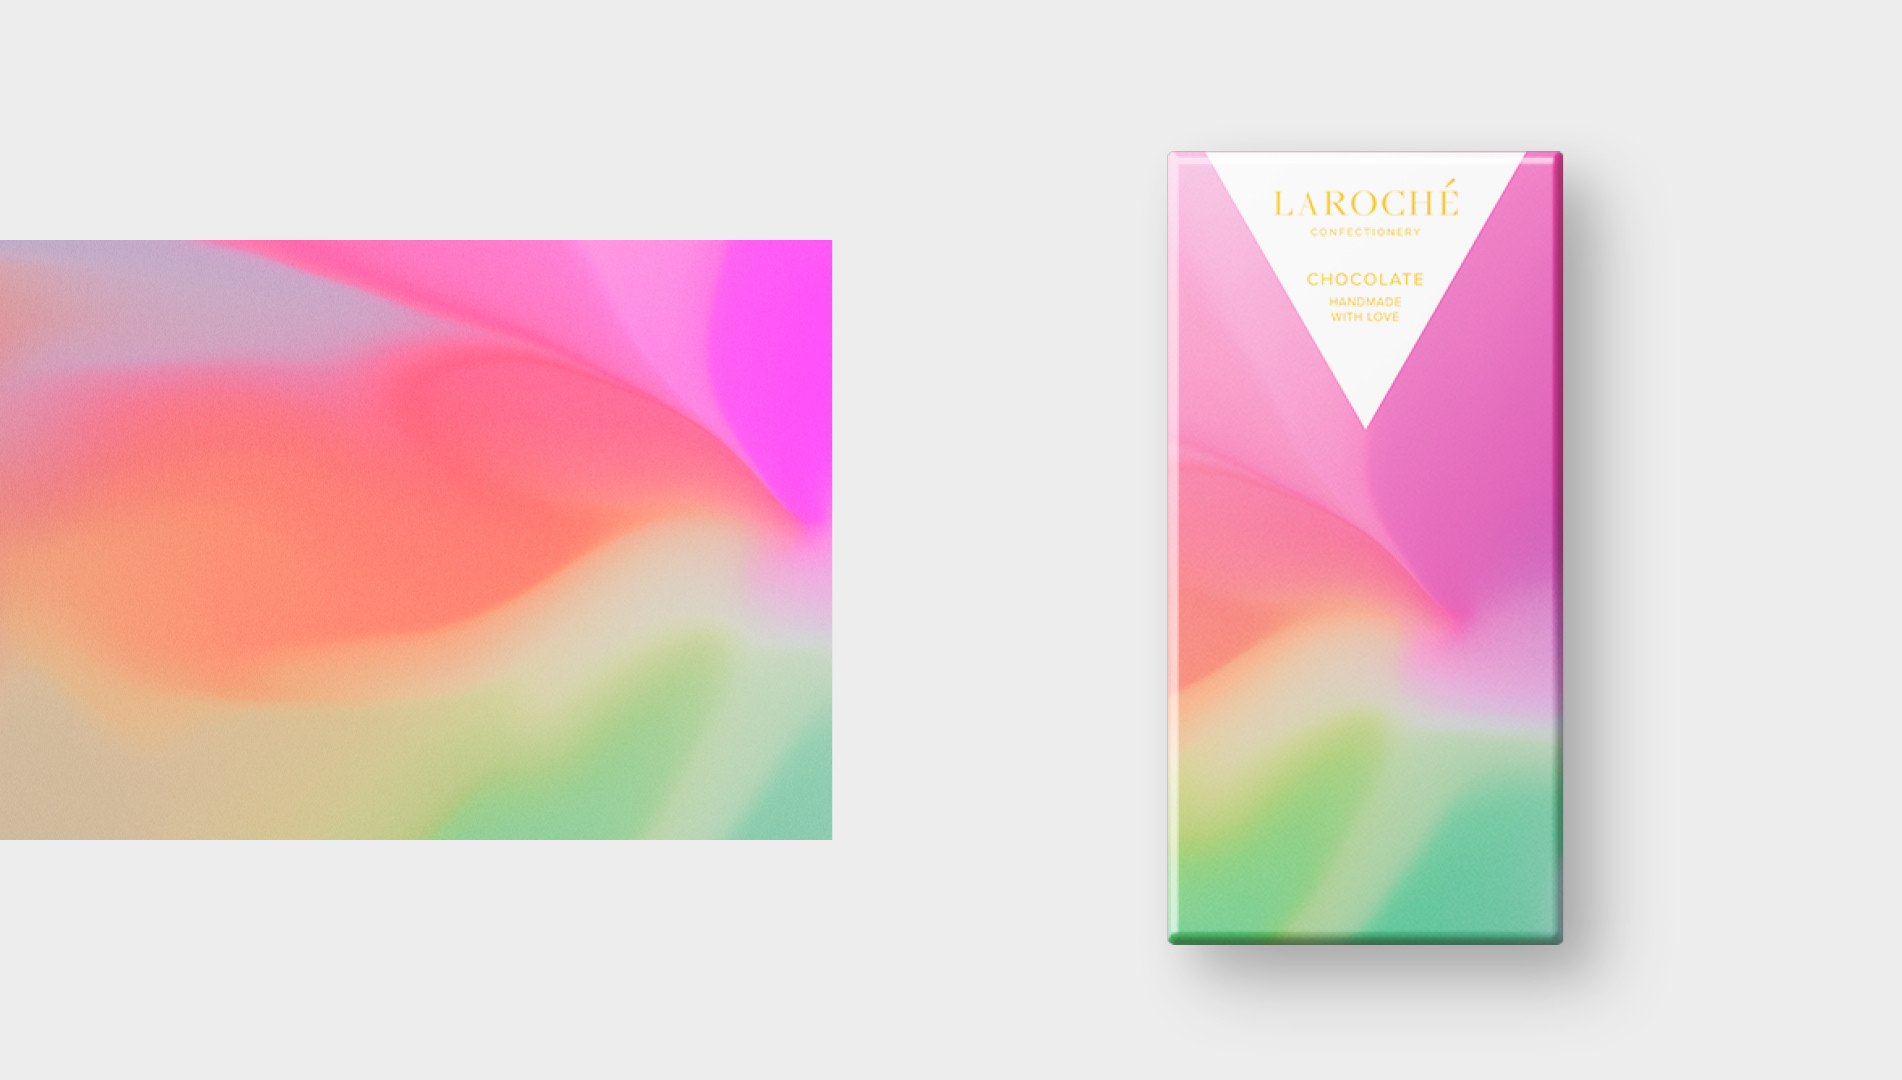 Vibrant & Abstract Packaging for Laroché Chocolate